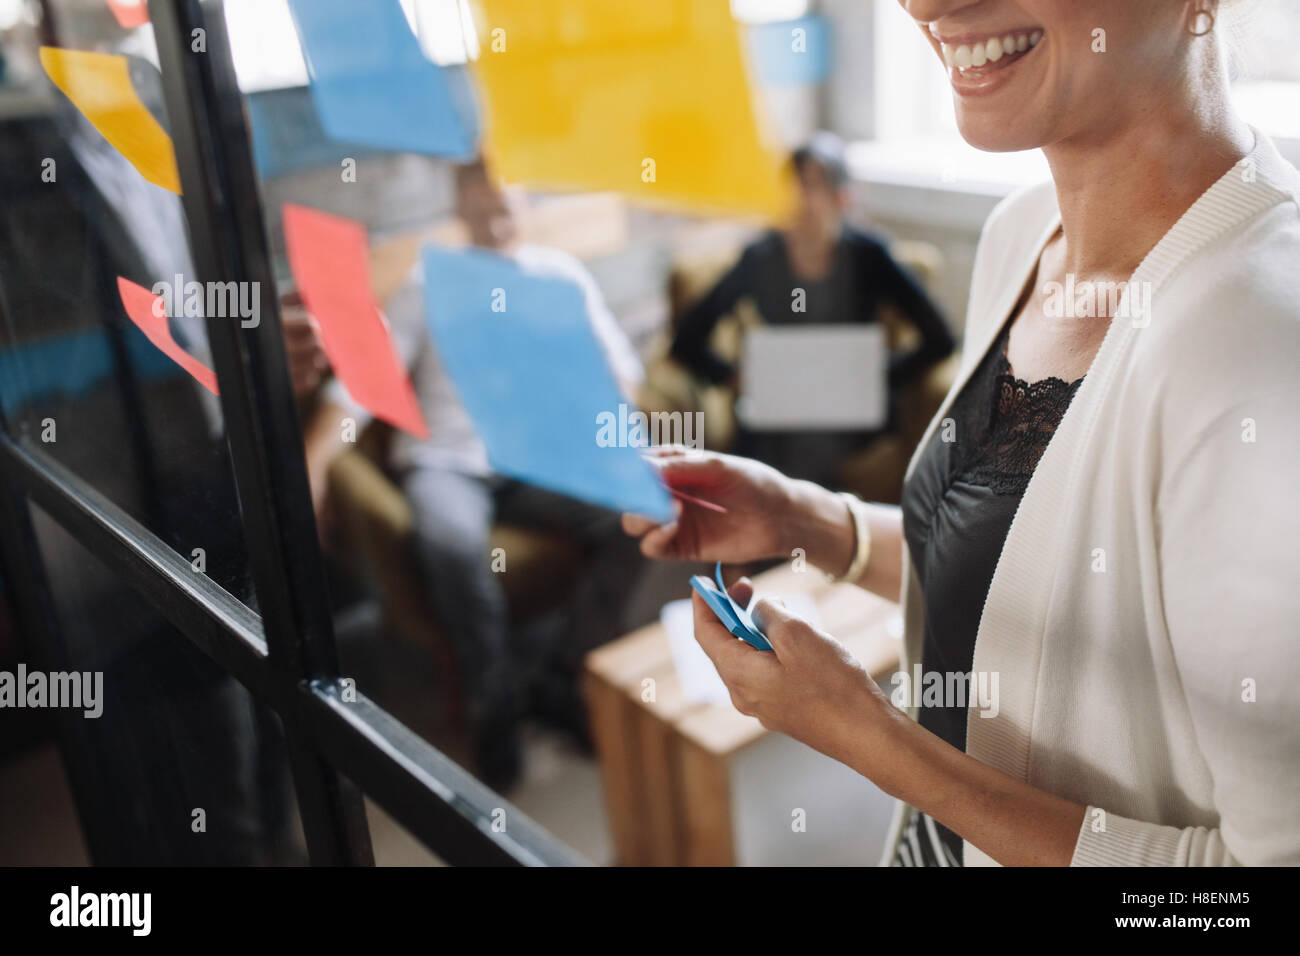 Smiling young woman brainstorming using adhesive notes on glass wall. Presenting ideas to colleagues during meeting. - Stock Image